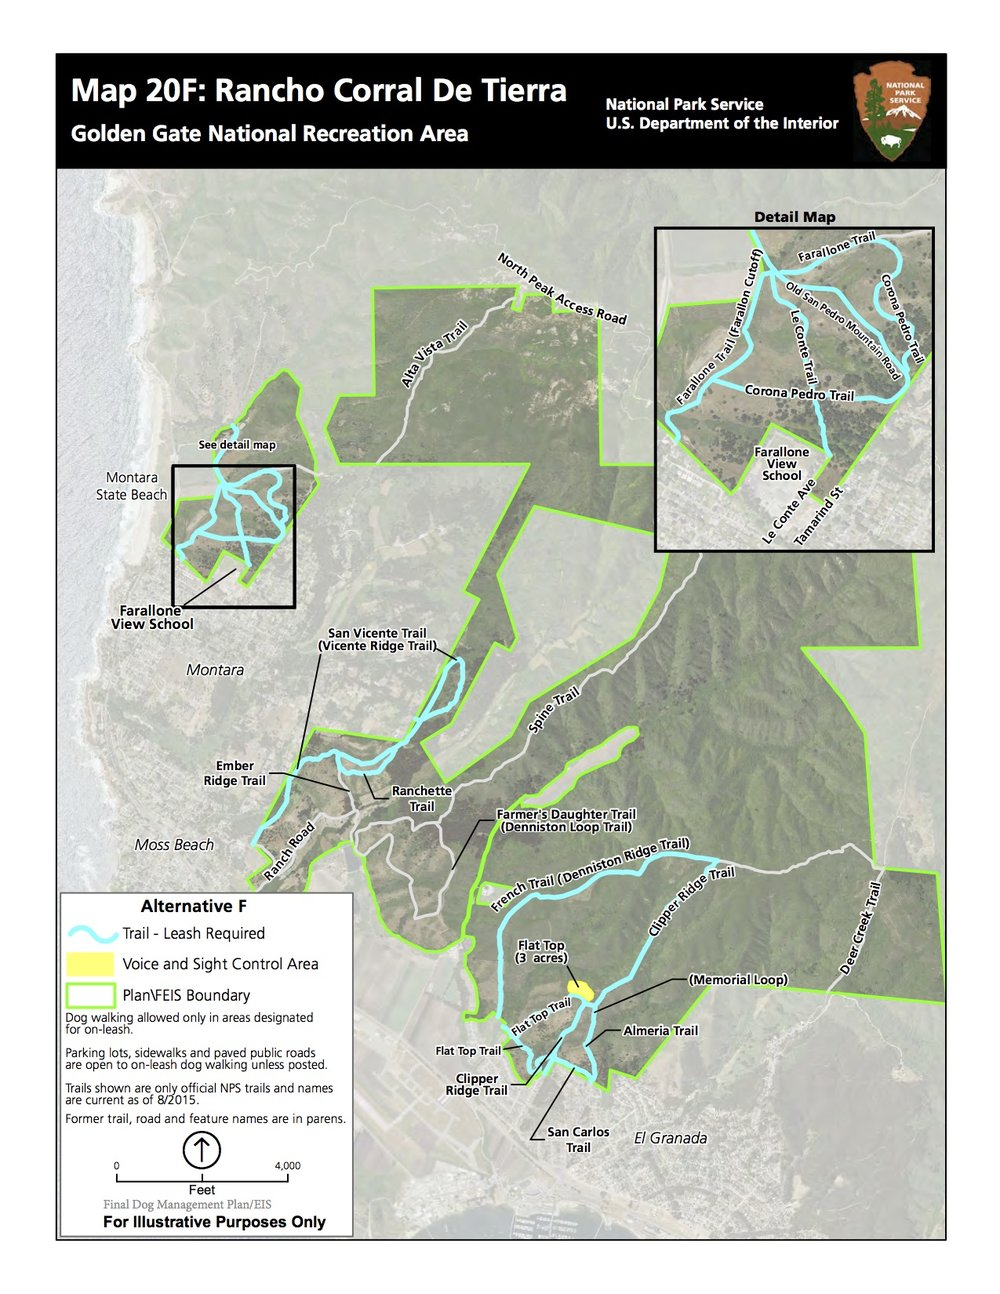 National park service - proposed CHANGES TO dog walking areas    (dec. 2016 Final EIS)